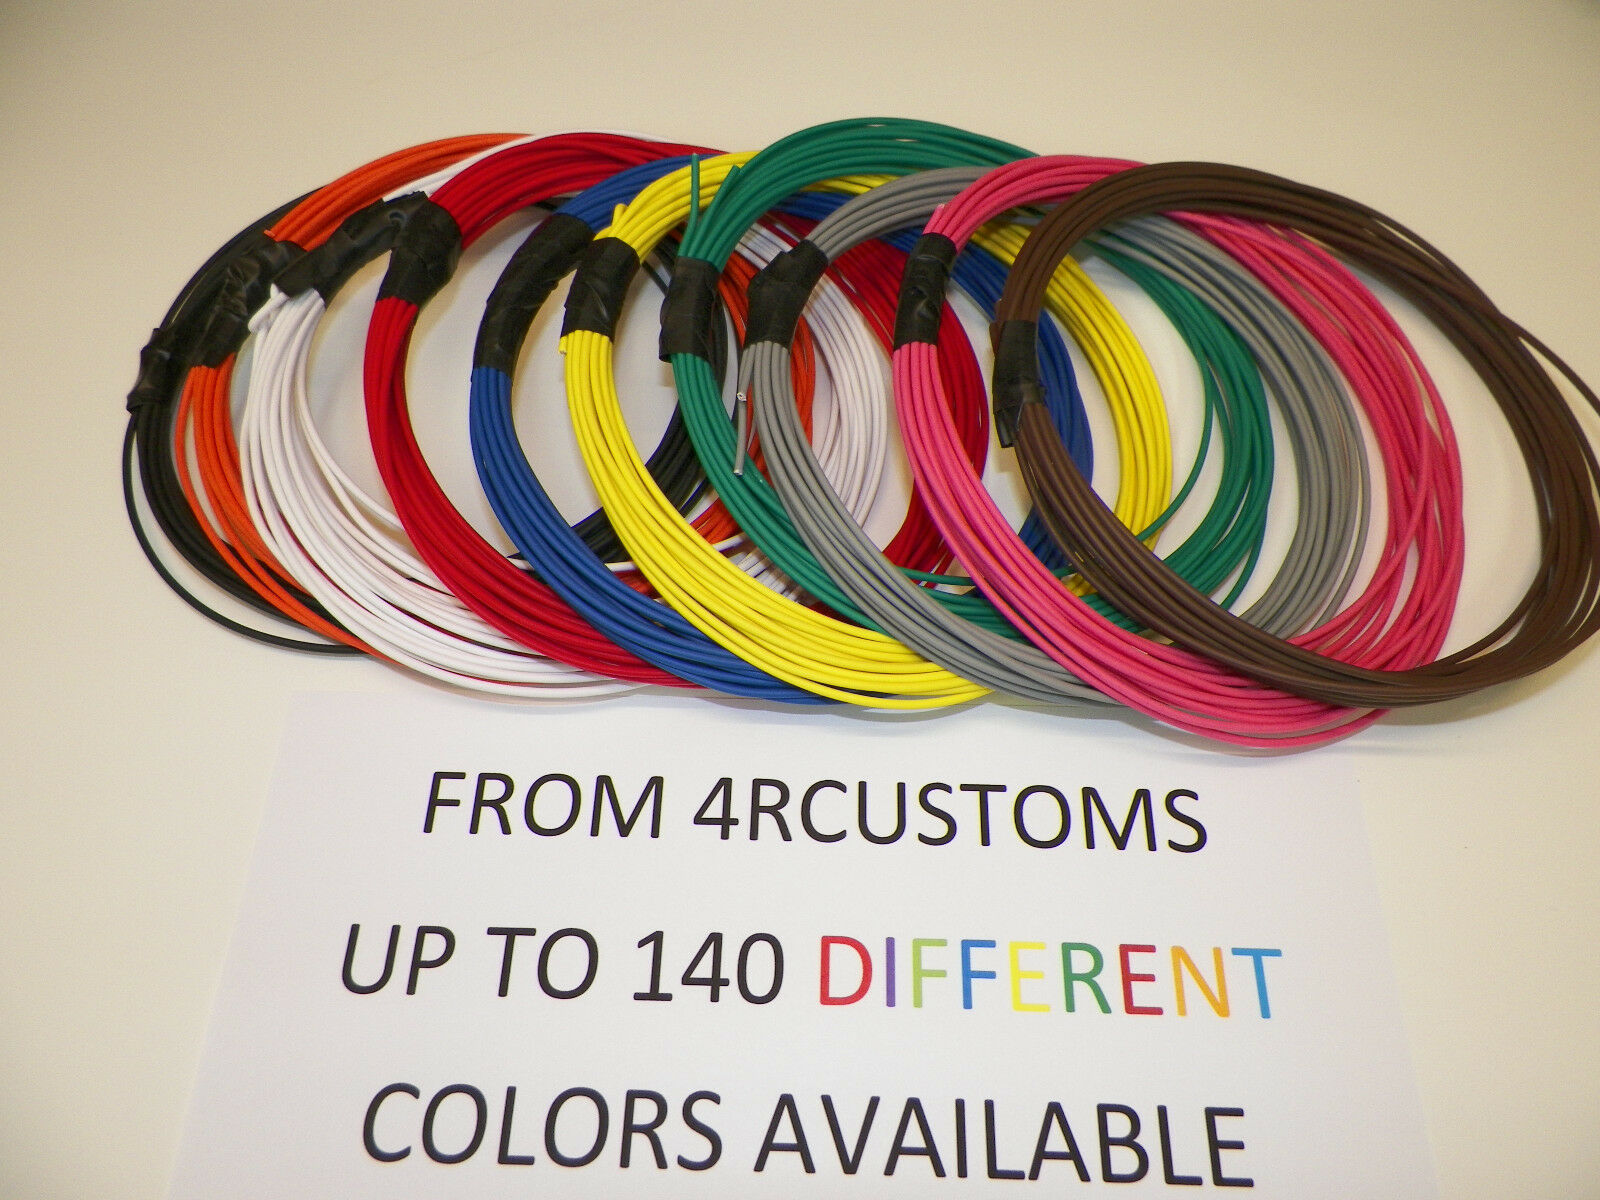 Have one to sell? Sell now 10 FEET                 AUTOMOTIVE WIRE 14 GAUGE GXL 11 COLOR CHOICES U PIC ONE                 FREE SHIPPING